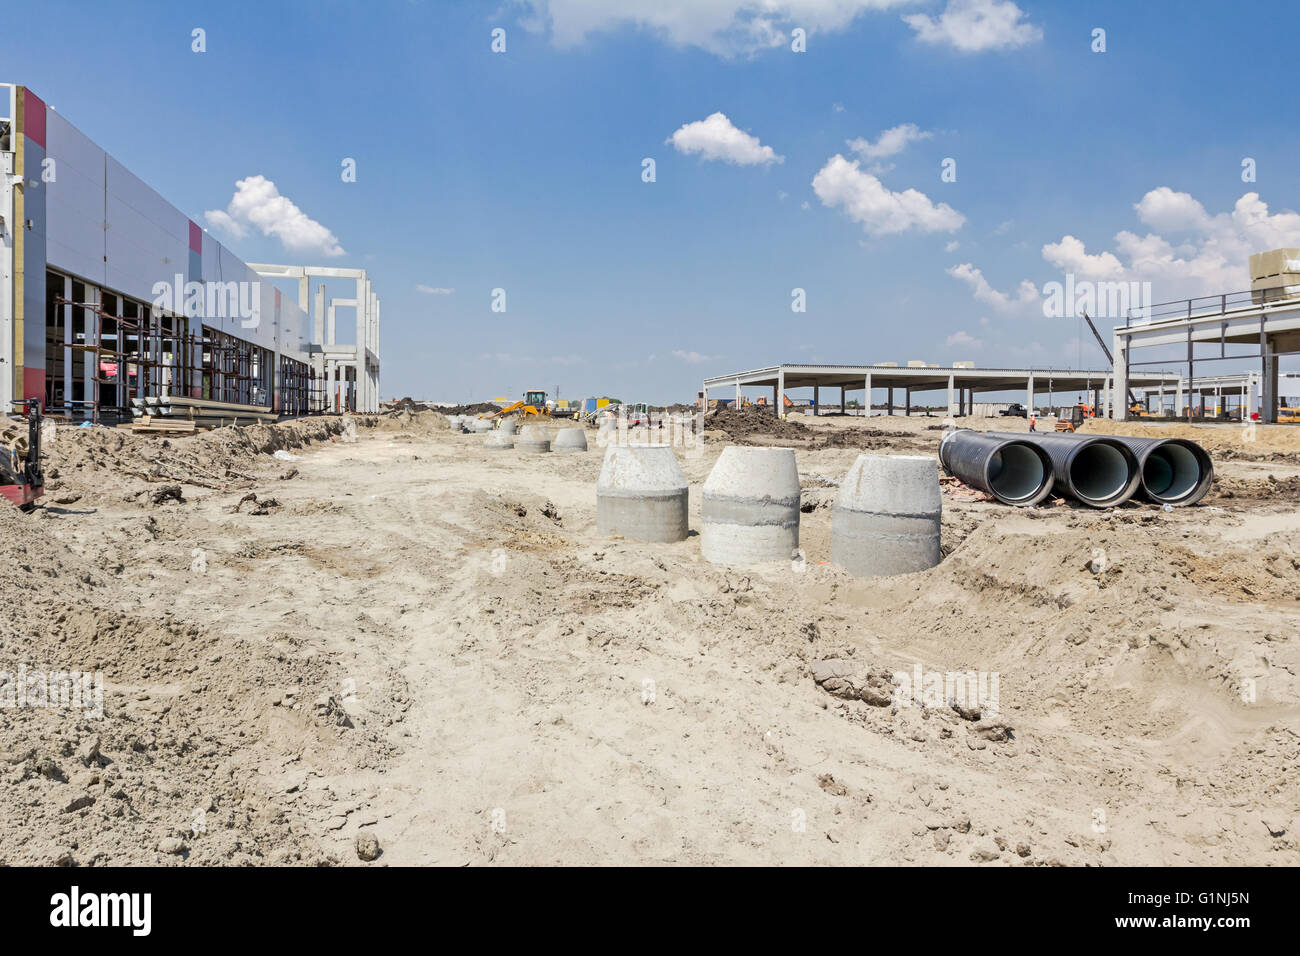 Concrete reinforcement pipe for drainage waste water from resident. Stock Photo